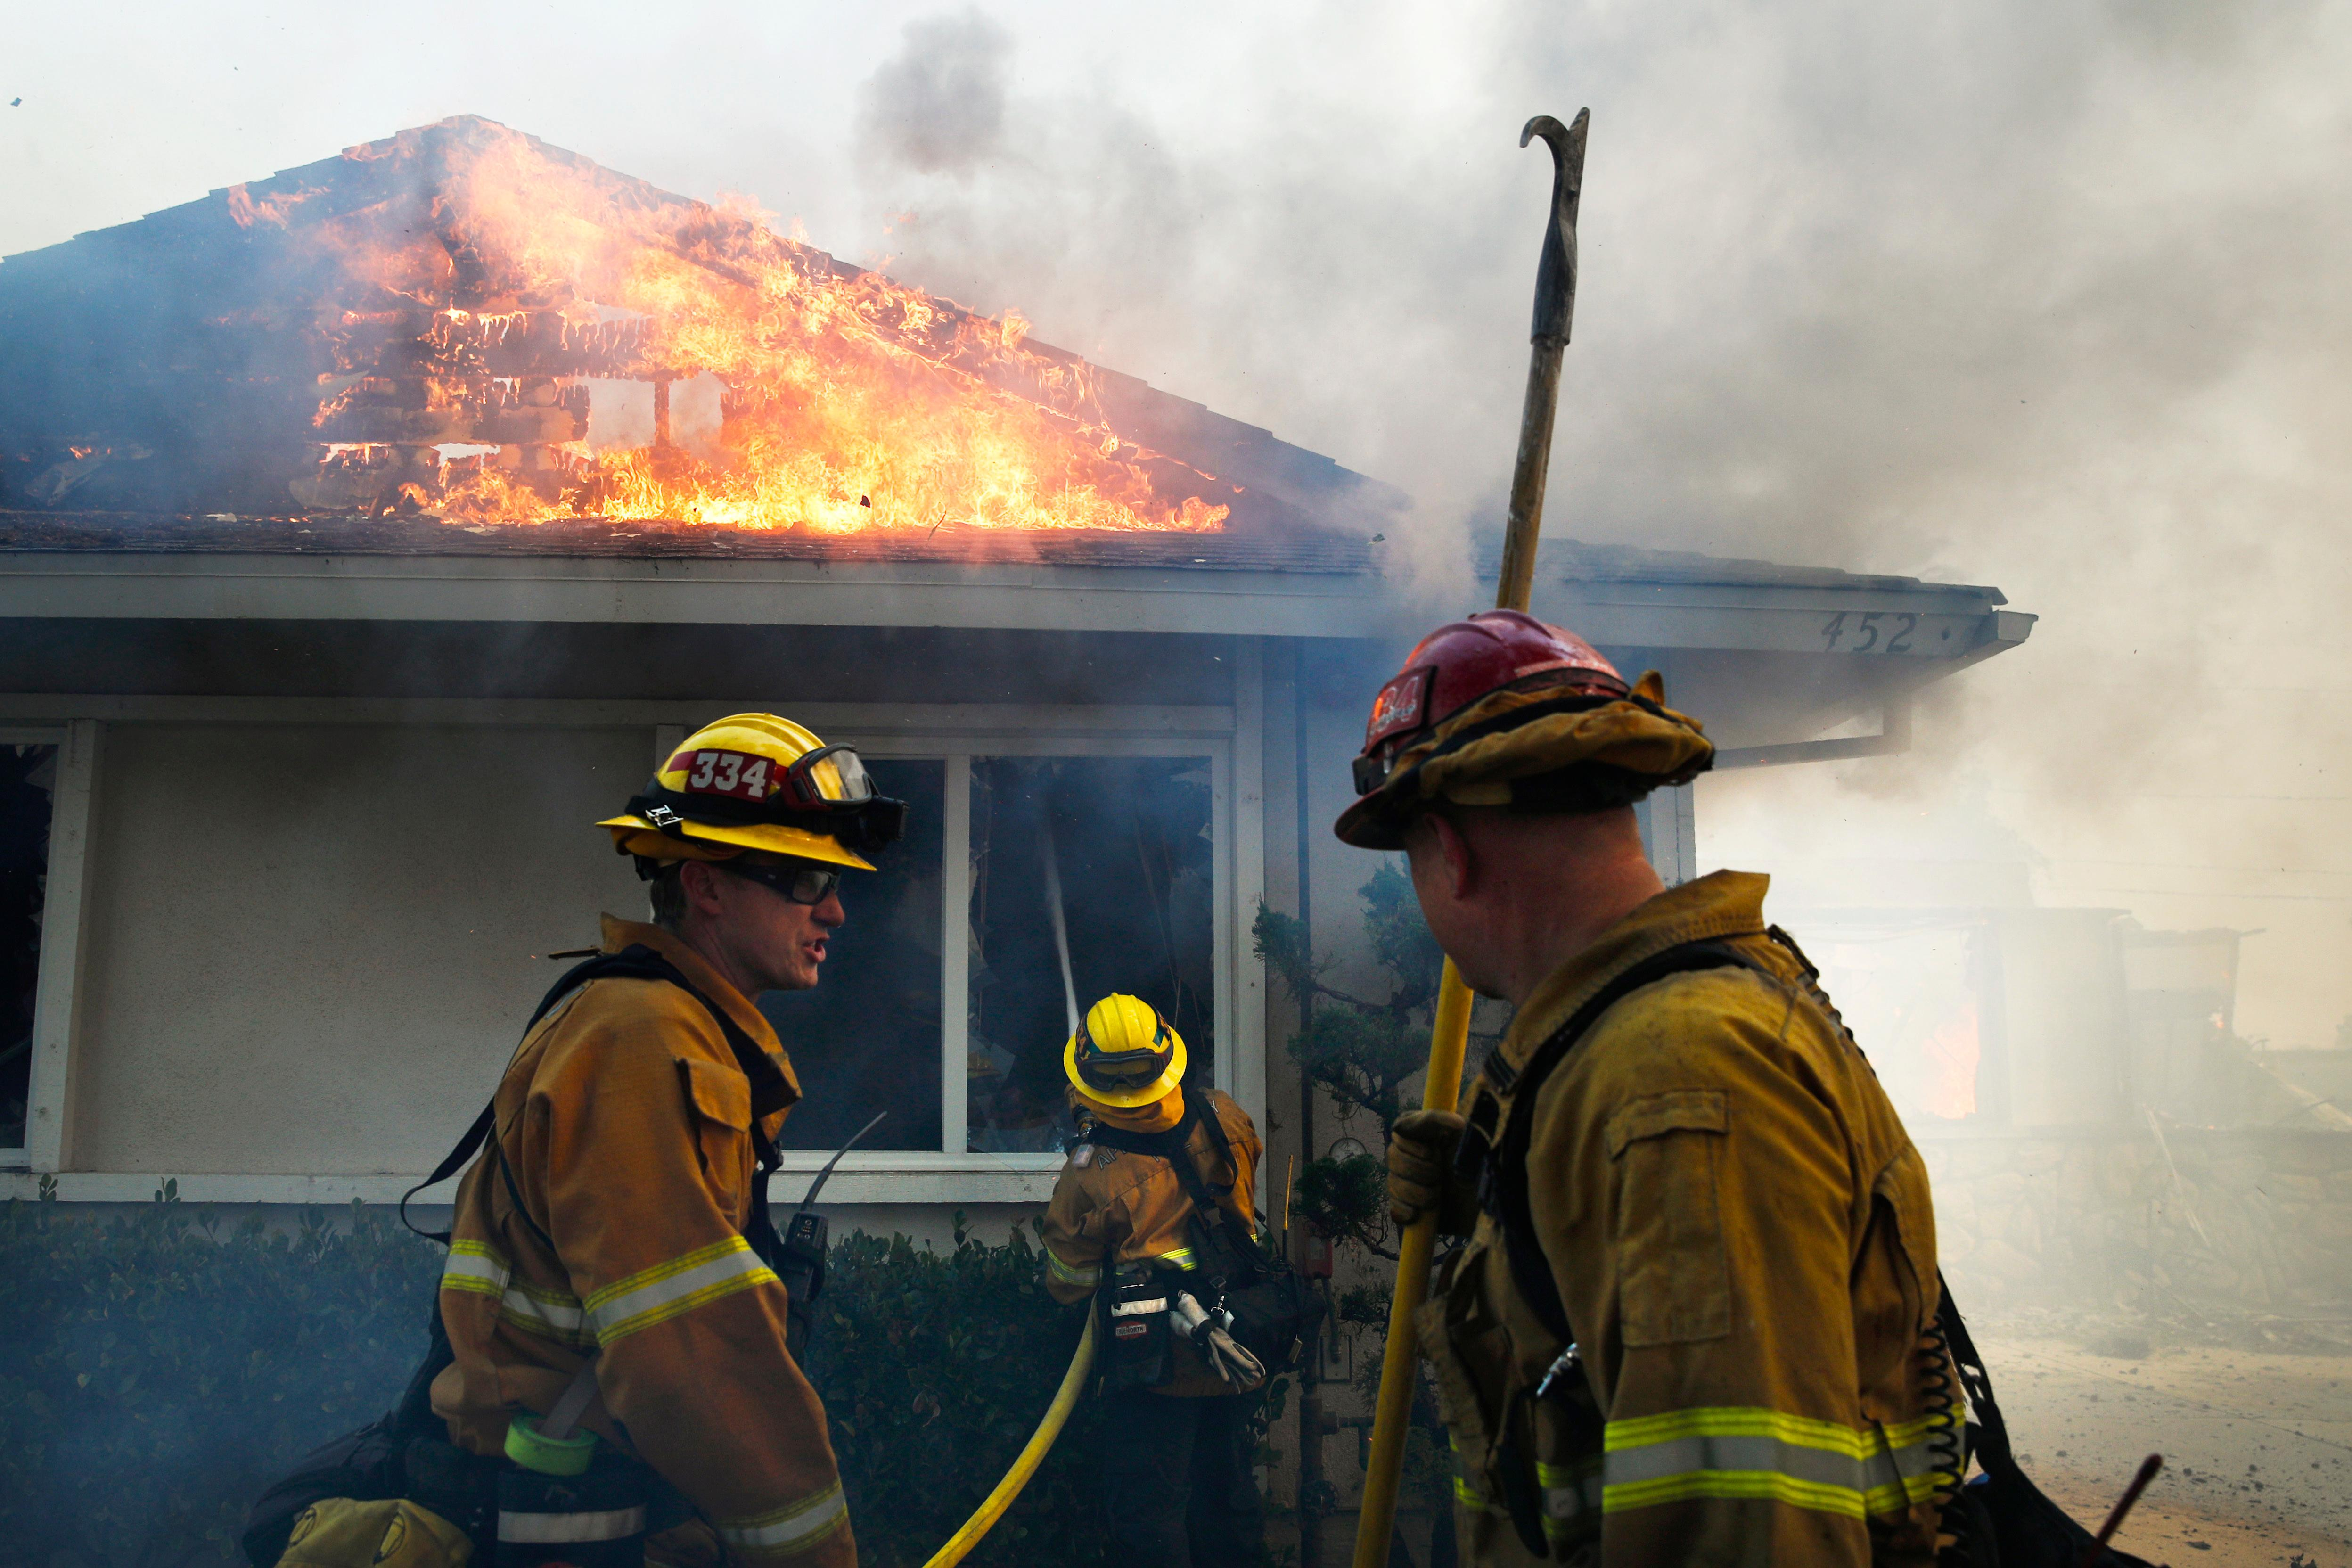 Firefighters put out a fire burning a home Tuesday, Dec. 5, 2017, in Ventura, Calif. Raked by ferocious Santa Ana winds, explosive wildfires northwest of Los Angeles and in the city's foothills burned a psychiatric hospital and scores of homes Tuesday and forced the evacuation of tens of thousands of people. (AP Photo/Jae C. Hong)